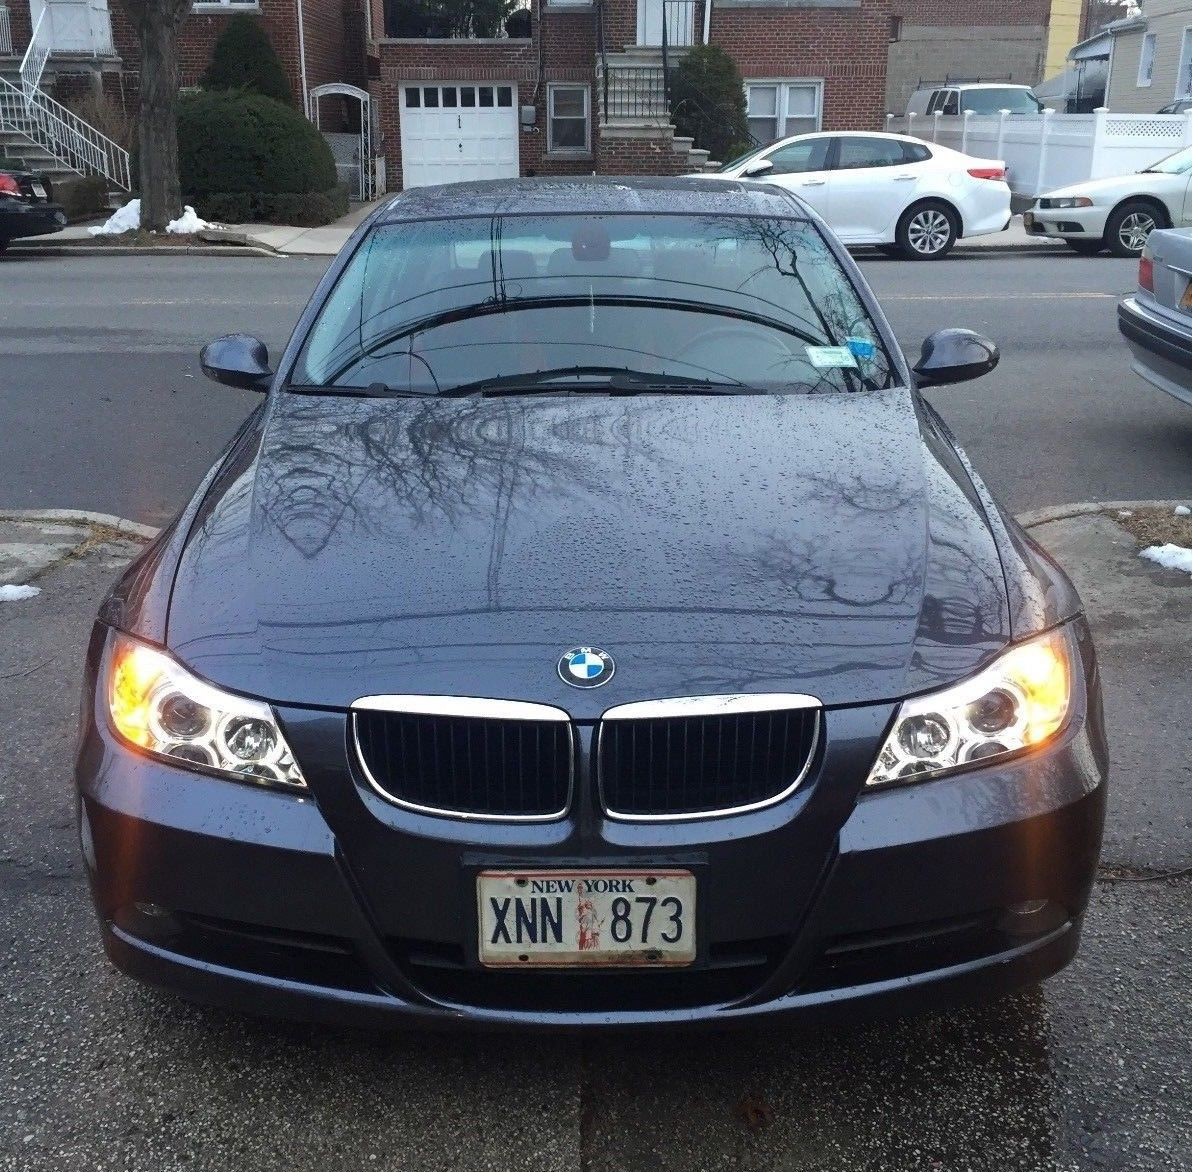 BMW Convertible 06 bmw 325i price Nice Awesome 2006 BMW 3-Series Base 2006 BMW 325i - Only 72k Miles ...